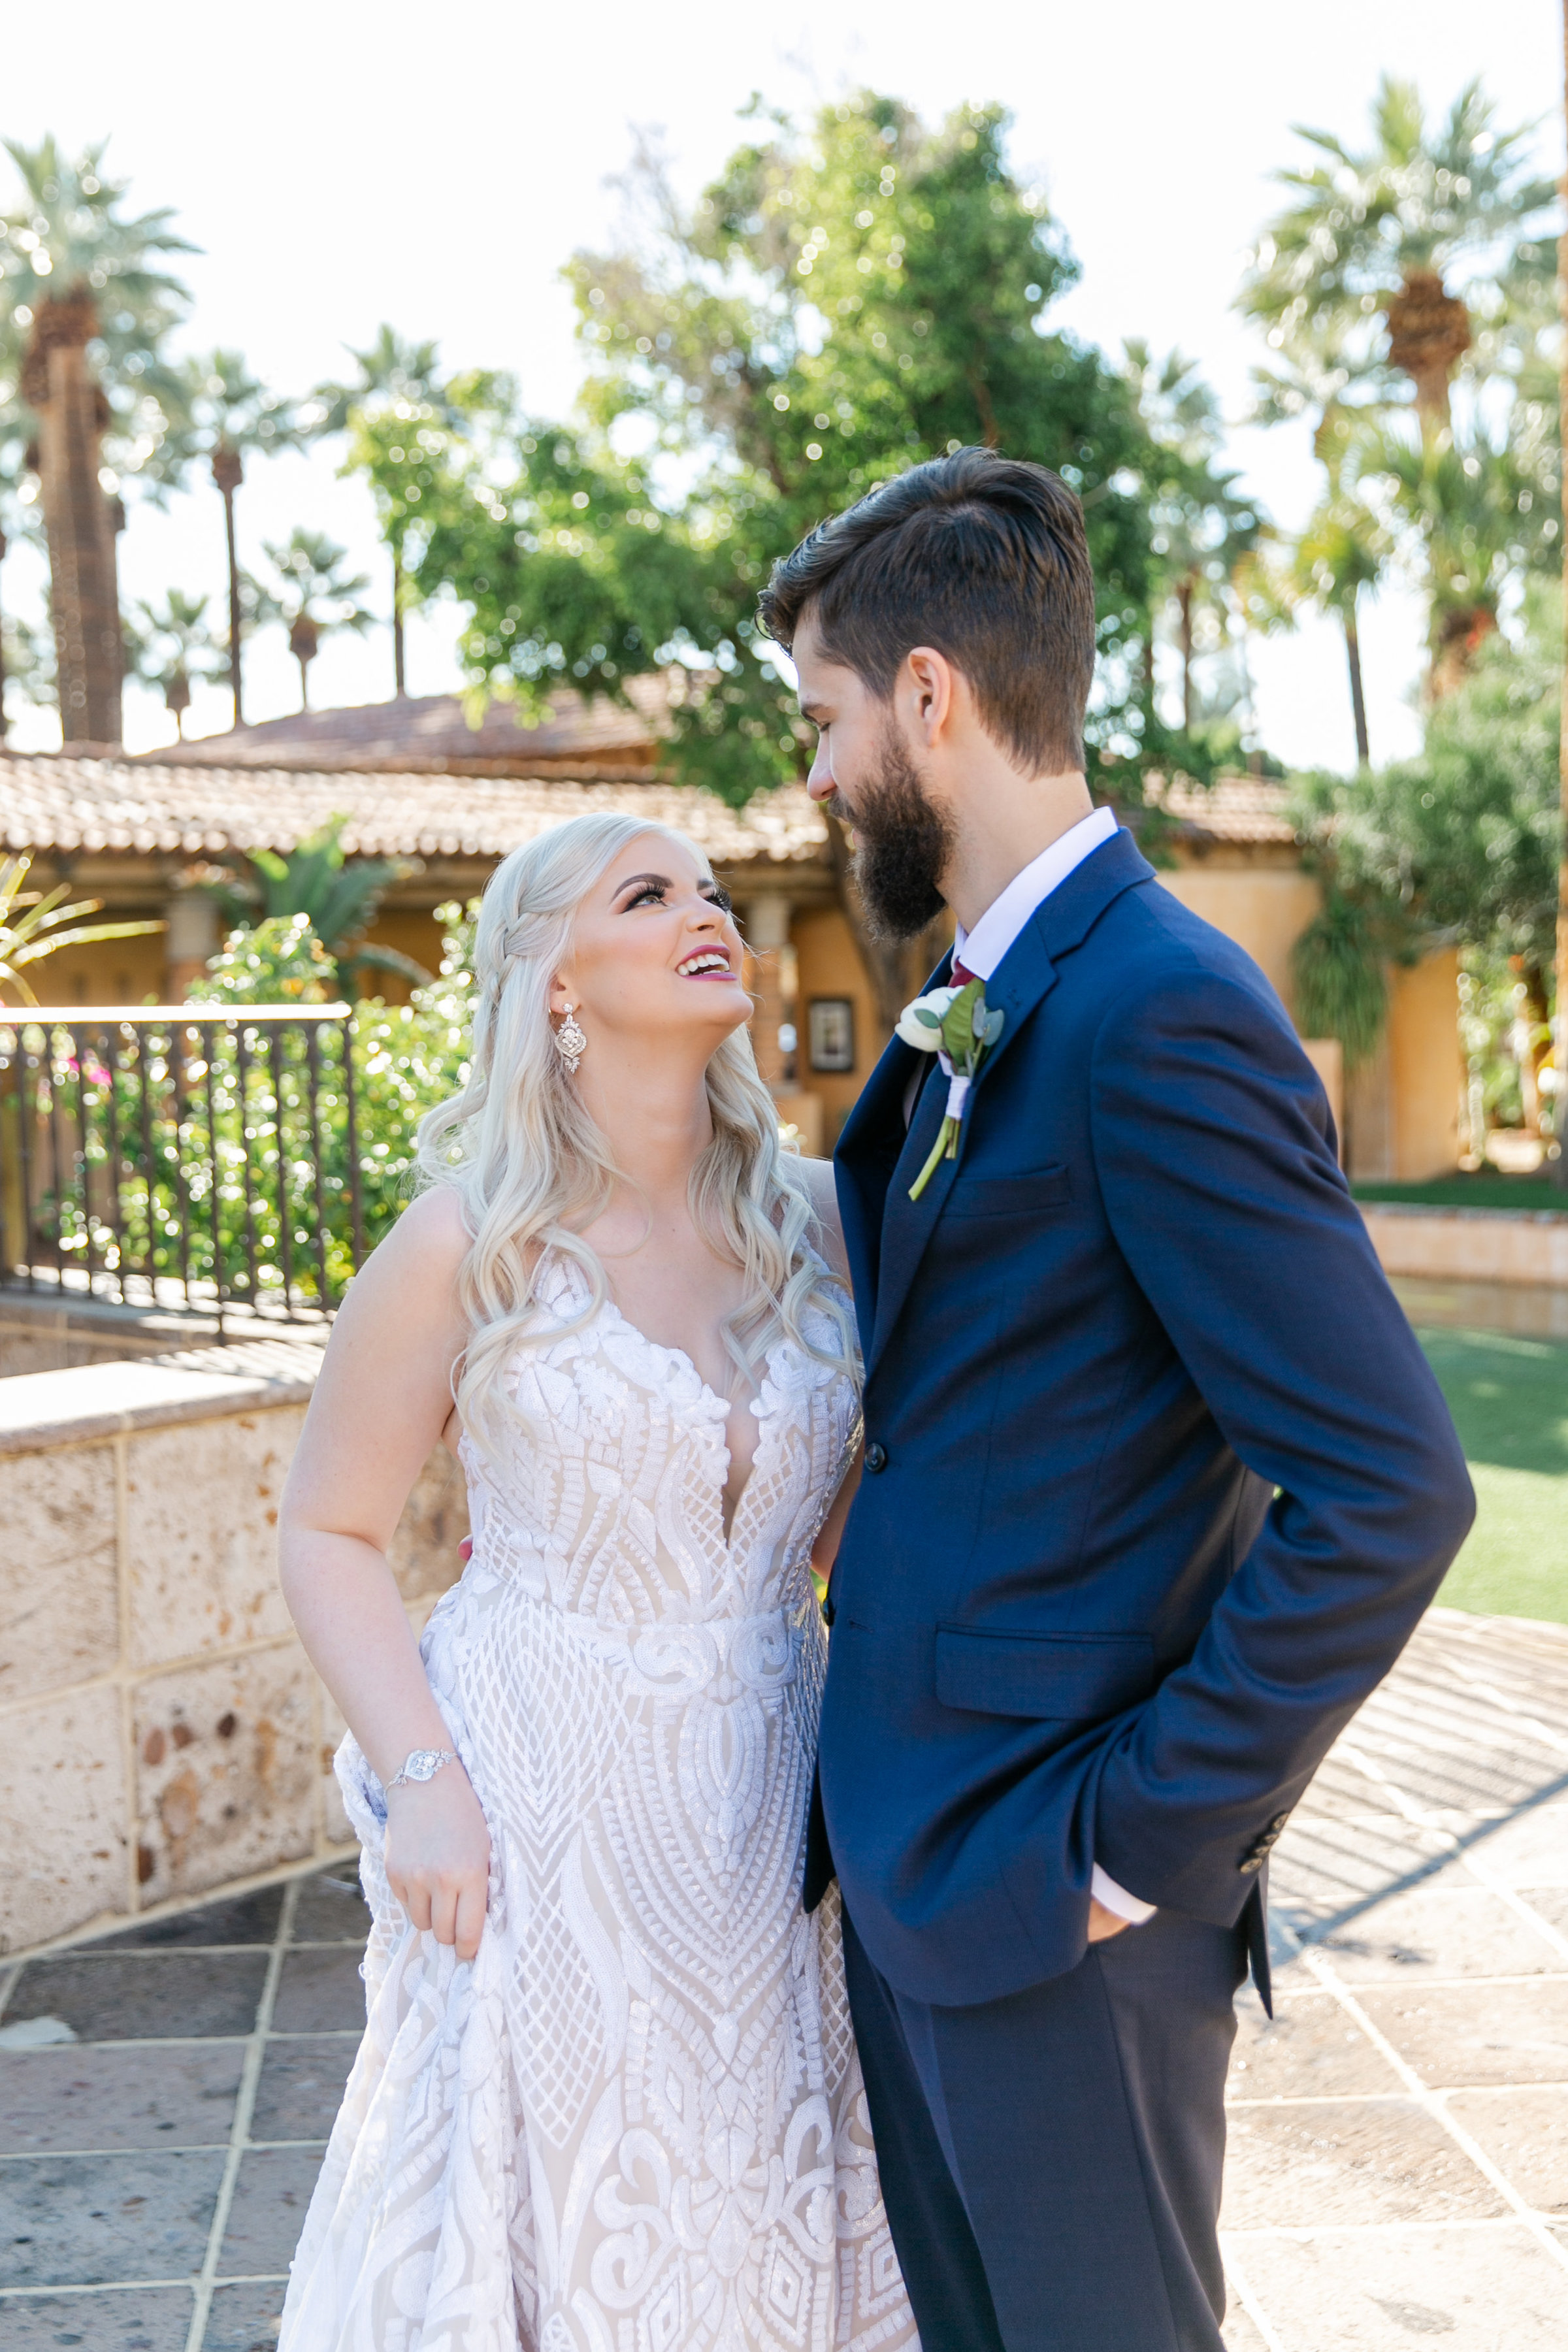 Karlie Colleen Photography - The Royal Palms Wedding - Some Like It Classic - Alex & Sam-123